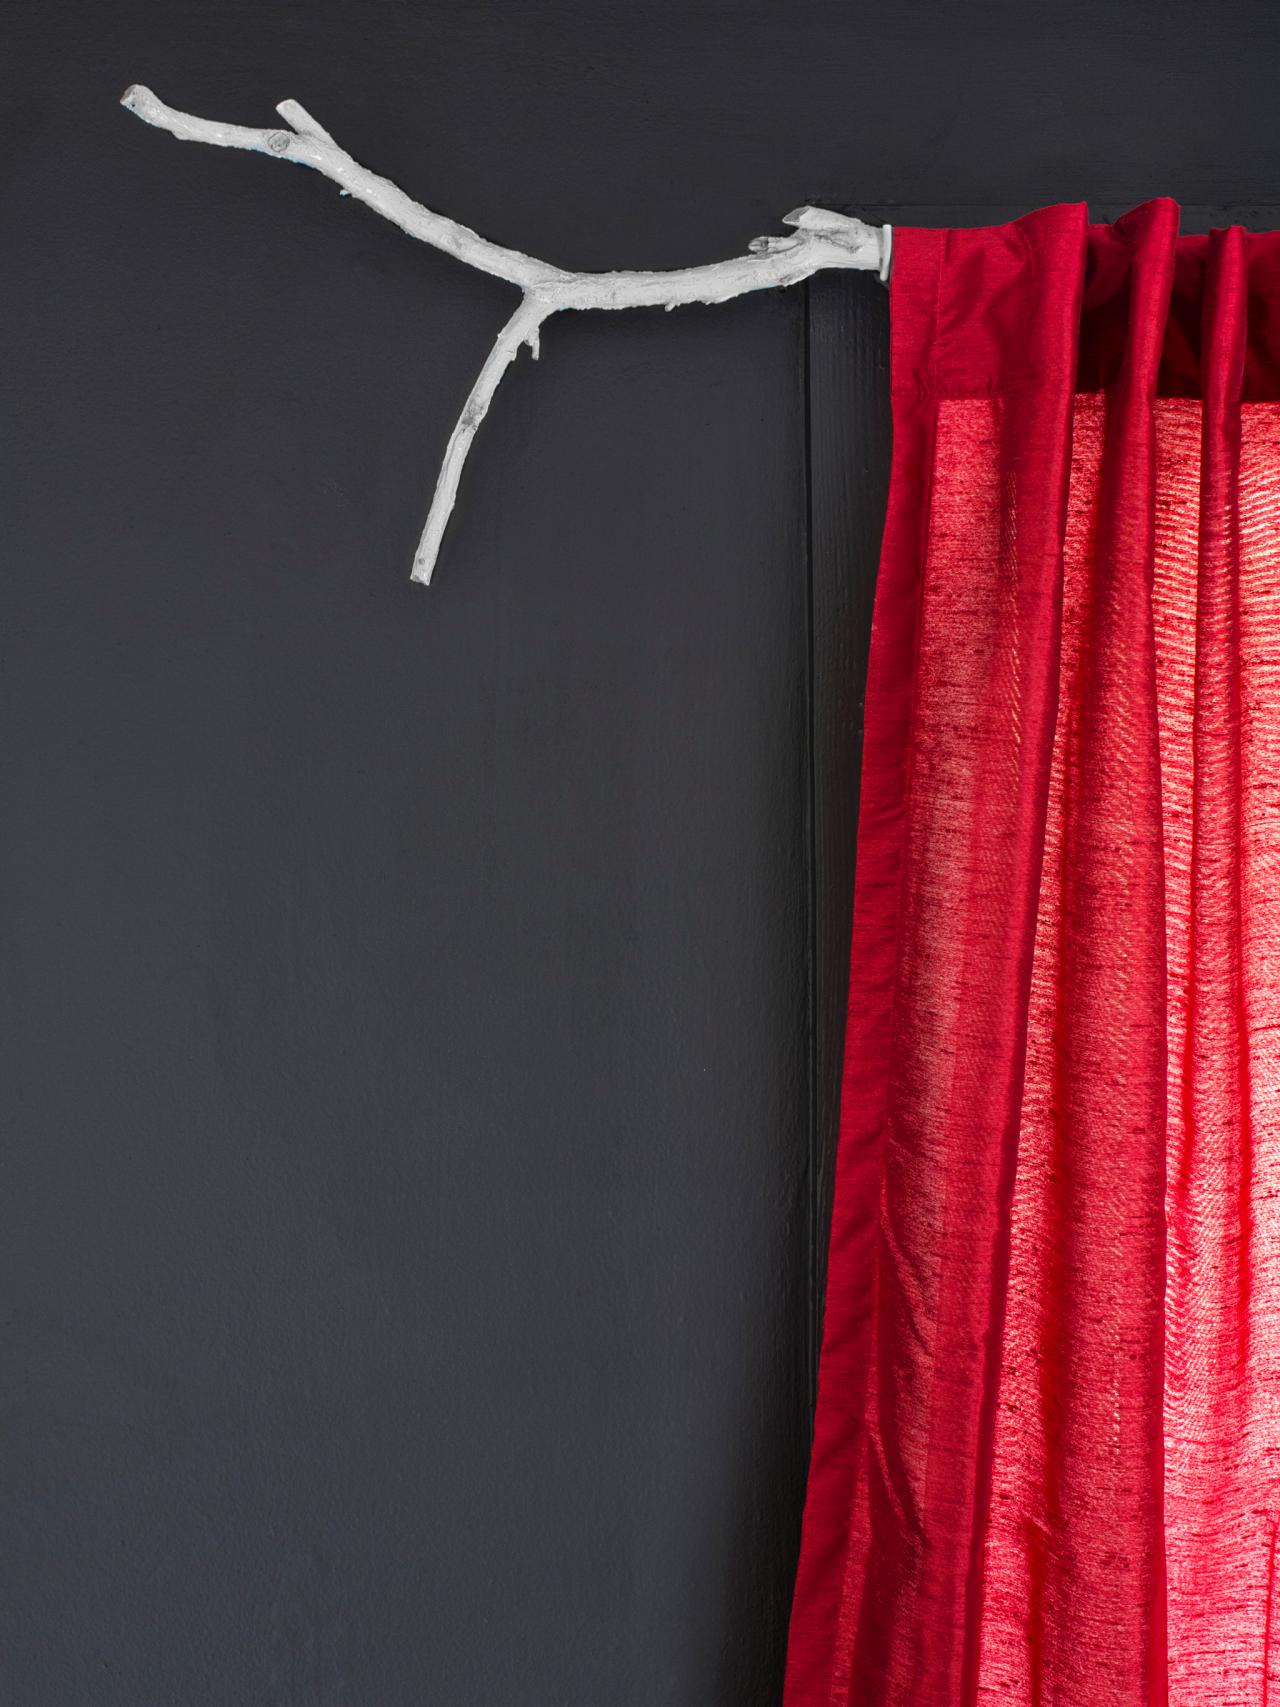 Things You Should Know About Window Treatments